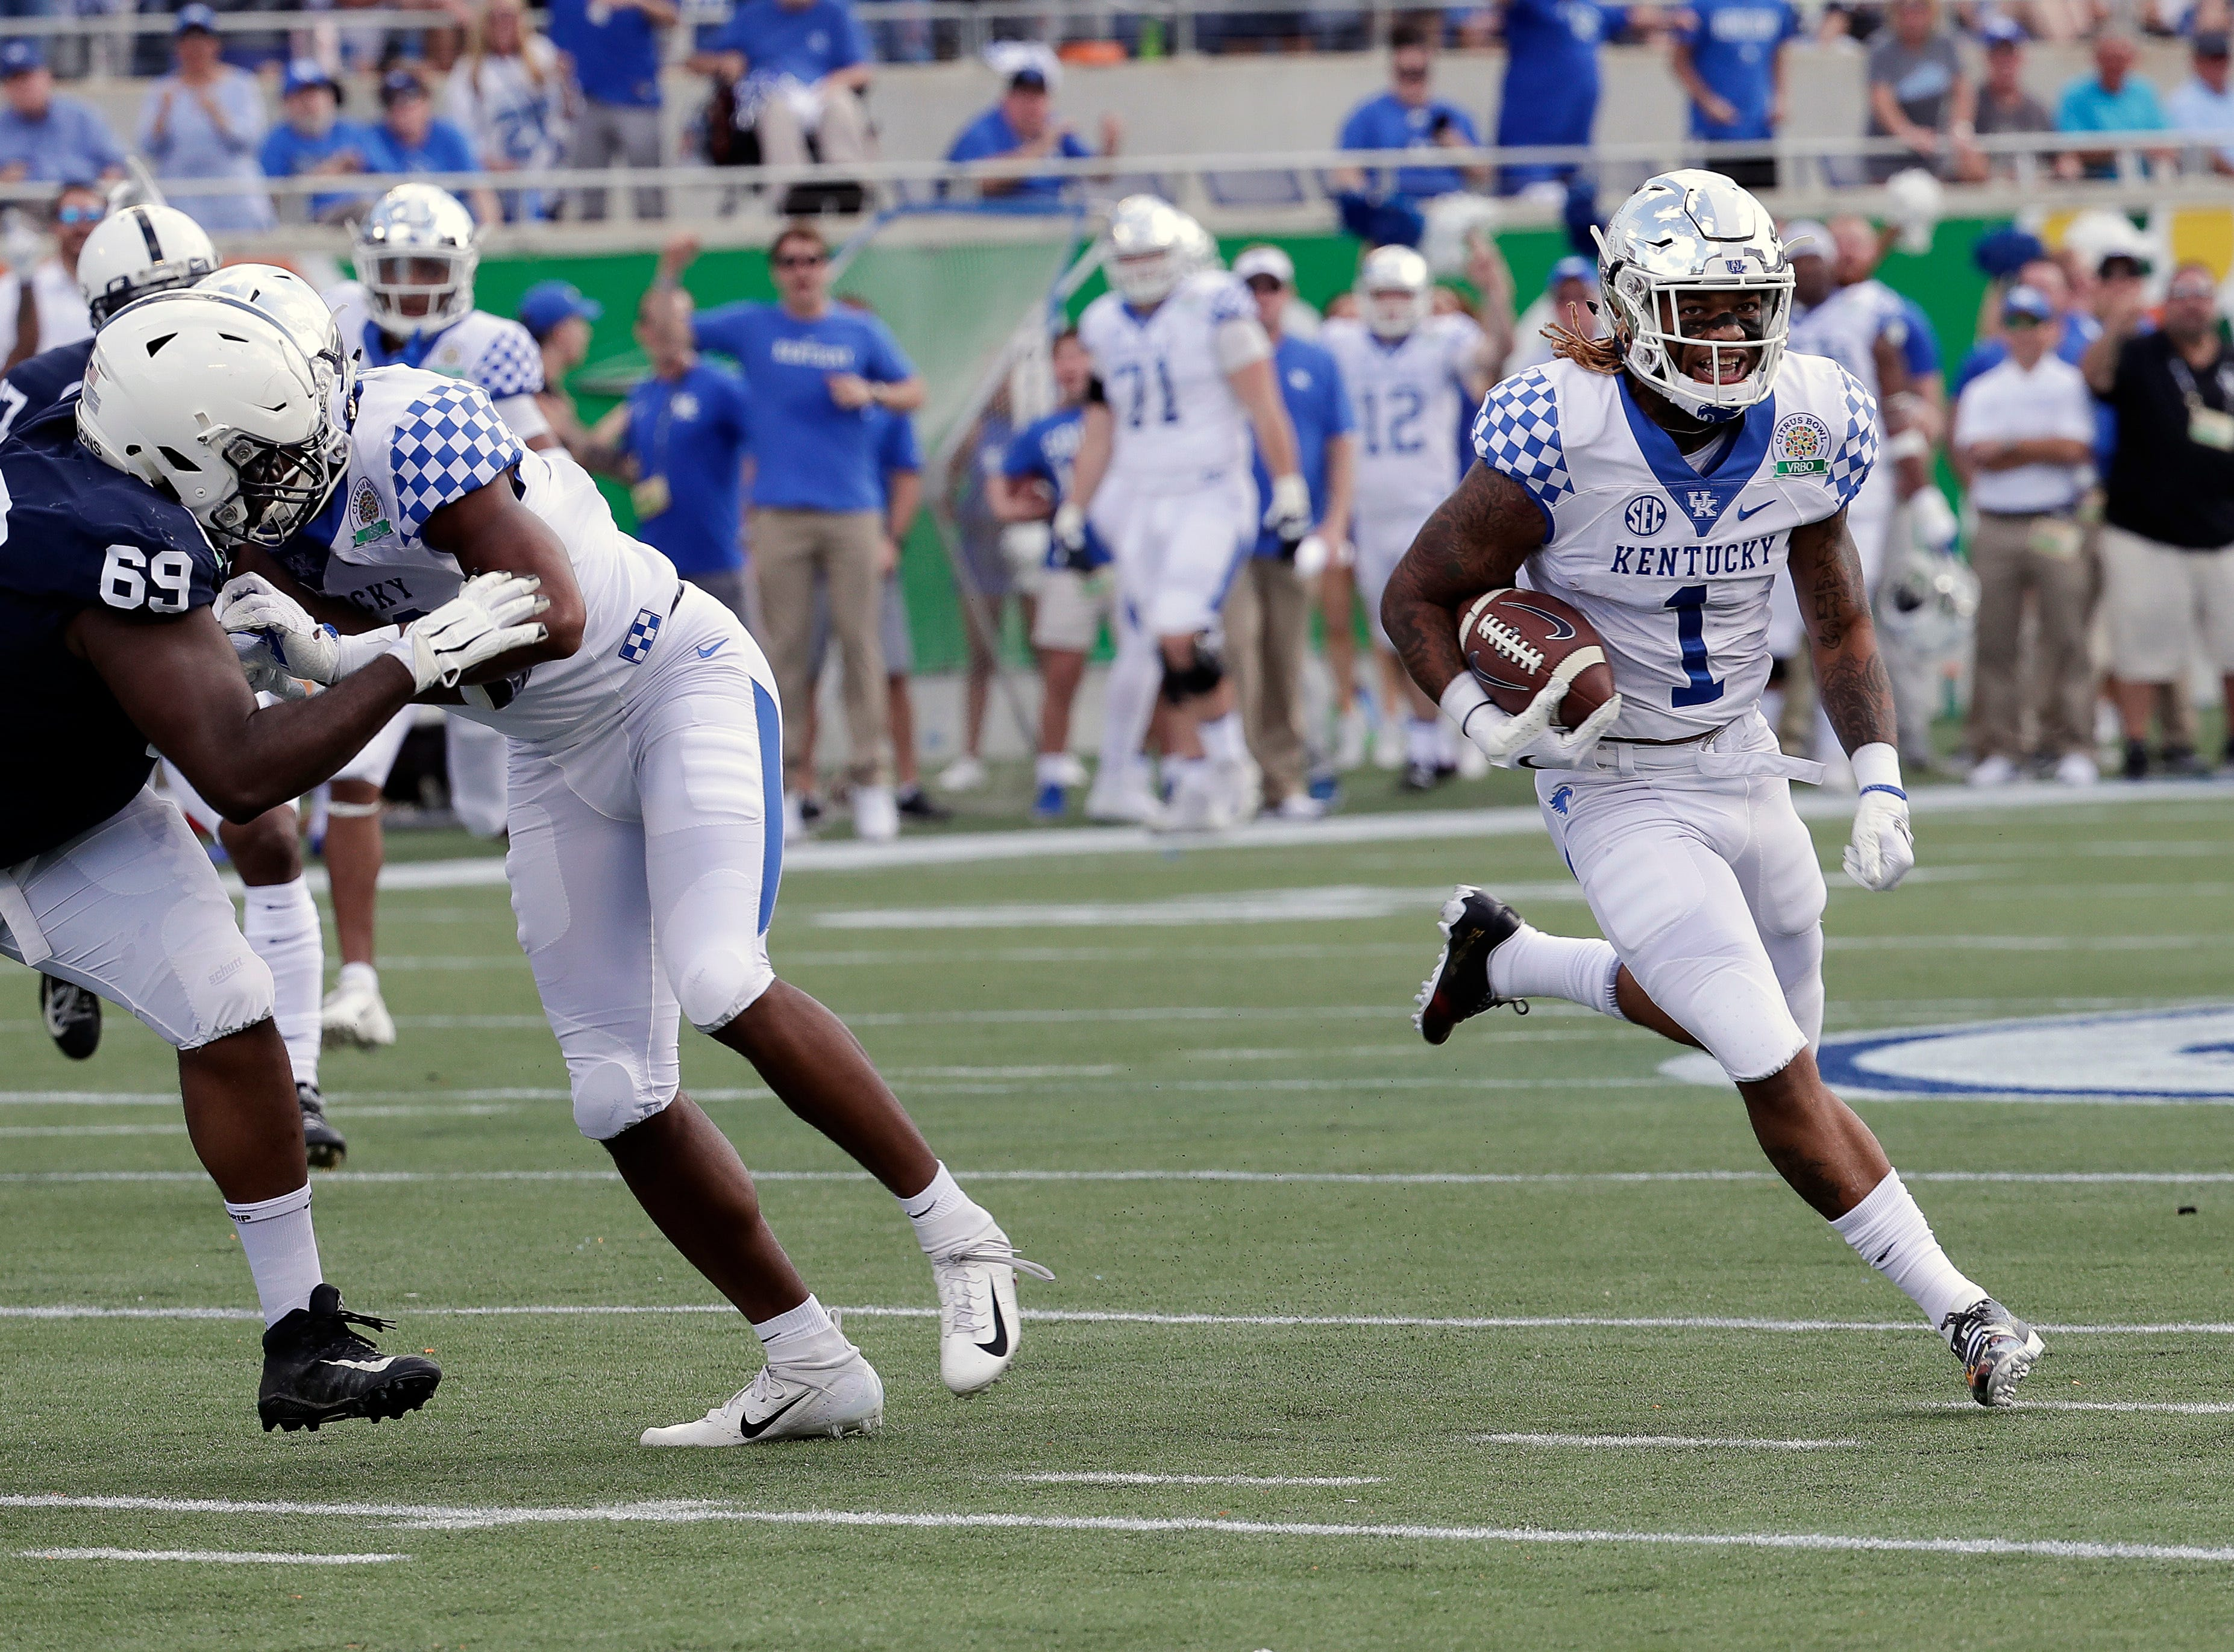 Kentucky's Lynn Bowden Jr. (1) returns a punt for a 58-yard touchdown as he gets past Penn State's C.J. Thorpe (69) during the first half of the Citrus Bowl NCAA college football game Tuesday, Jan. 1, 2019, in Orlando, Fla. (AP Photo/John Raoux)